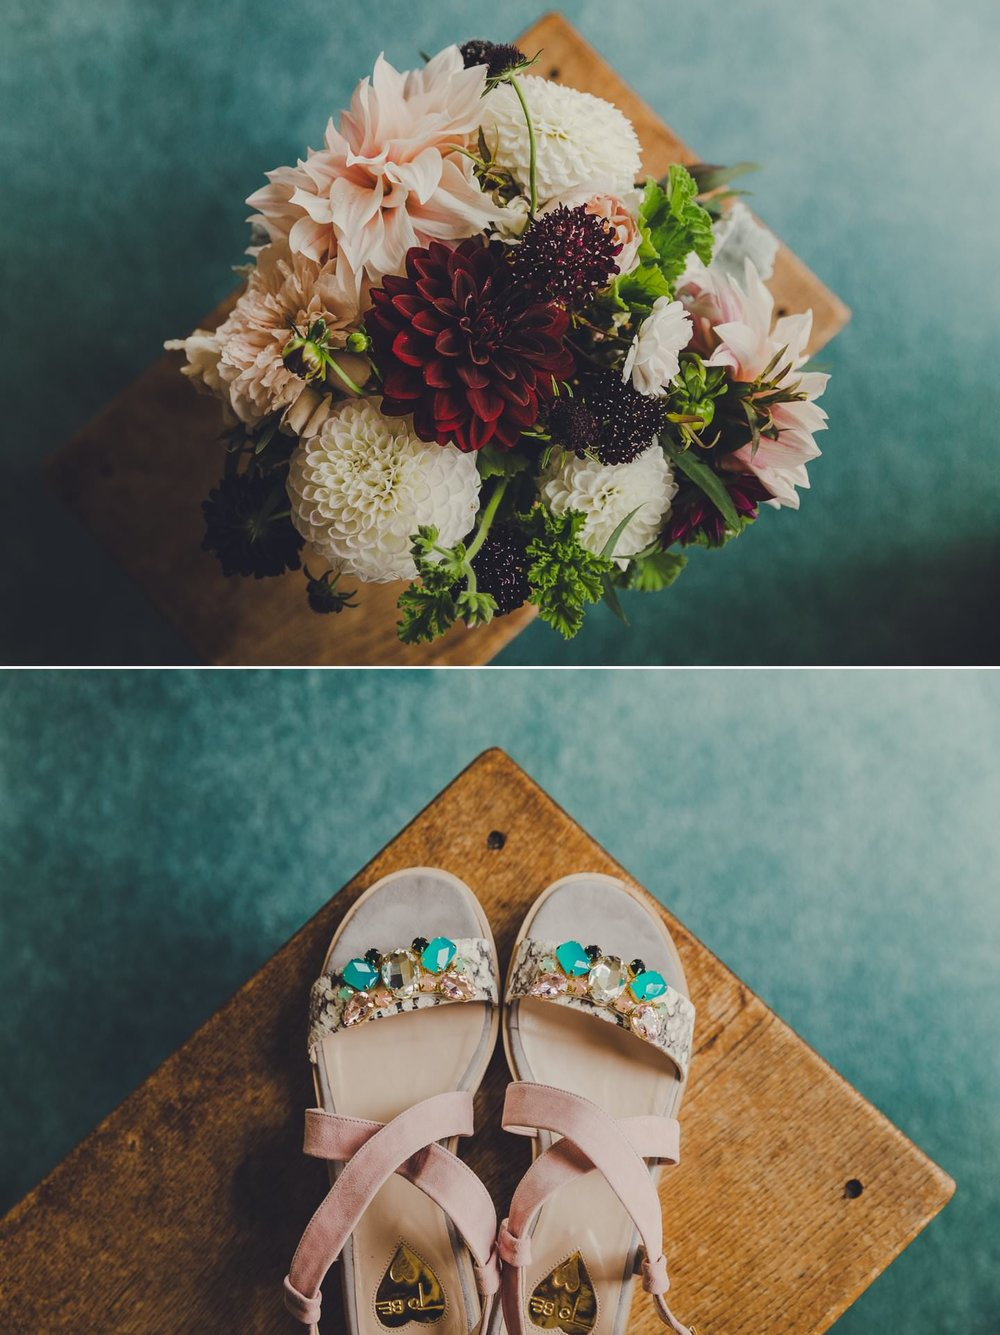 Brides details. Bridal bouquet by Twig and Arrow florist